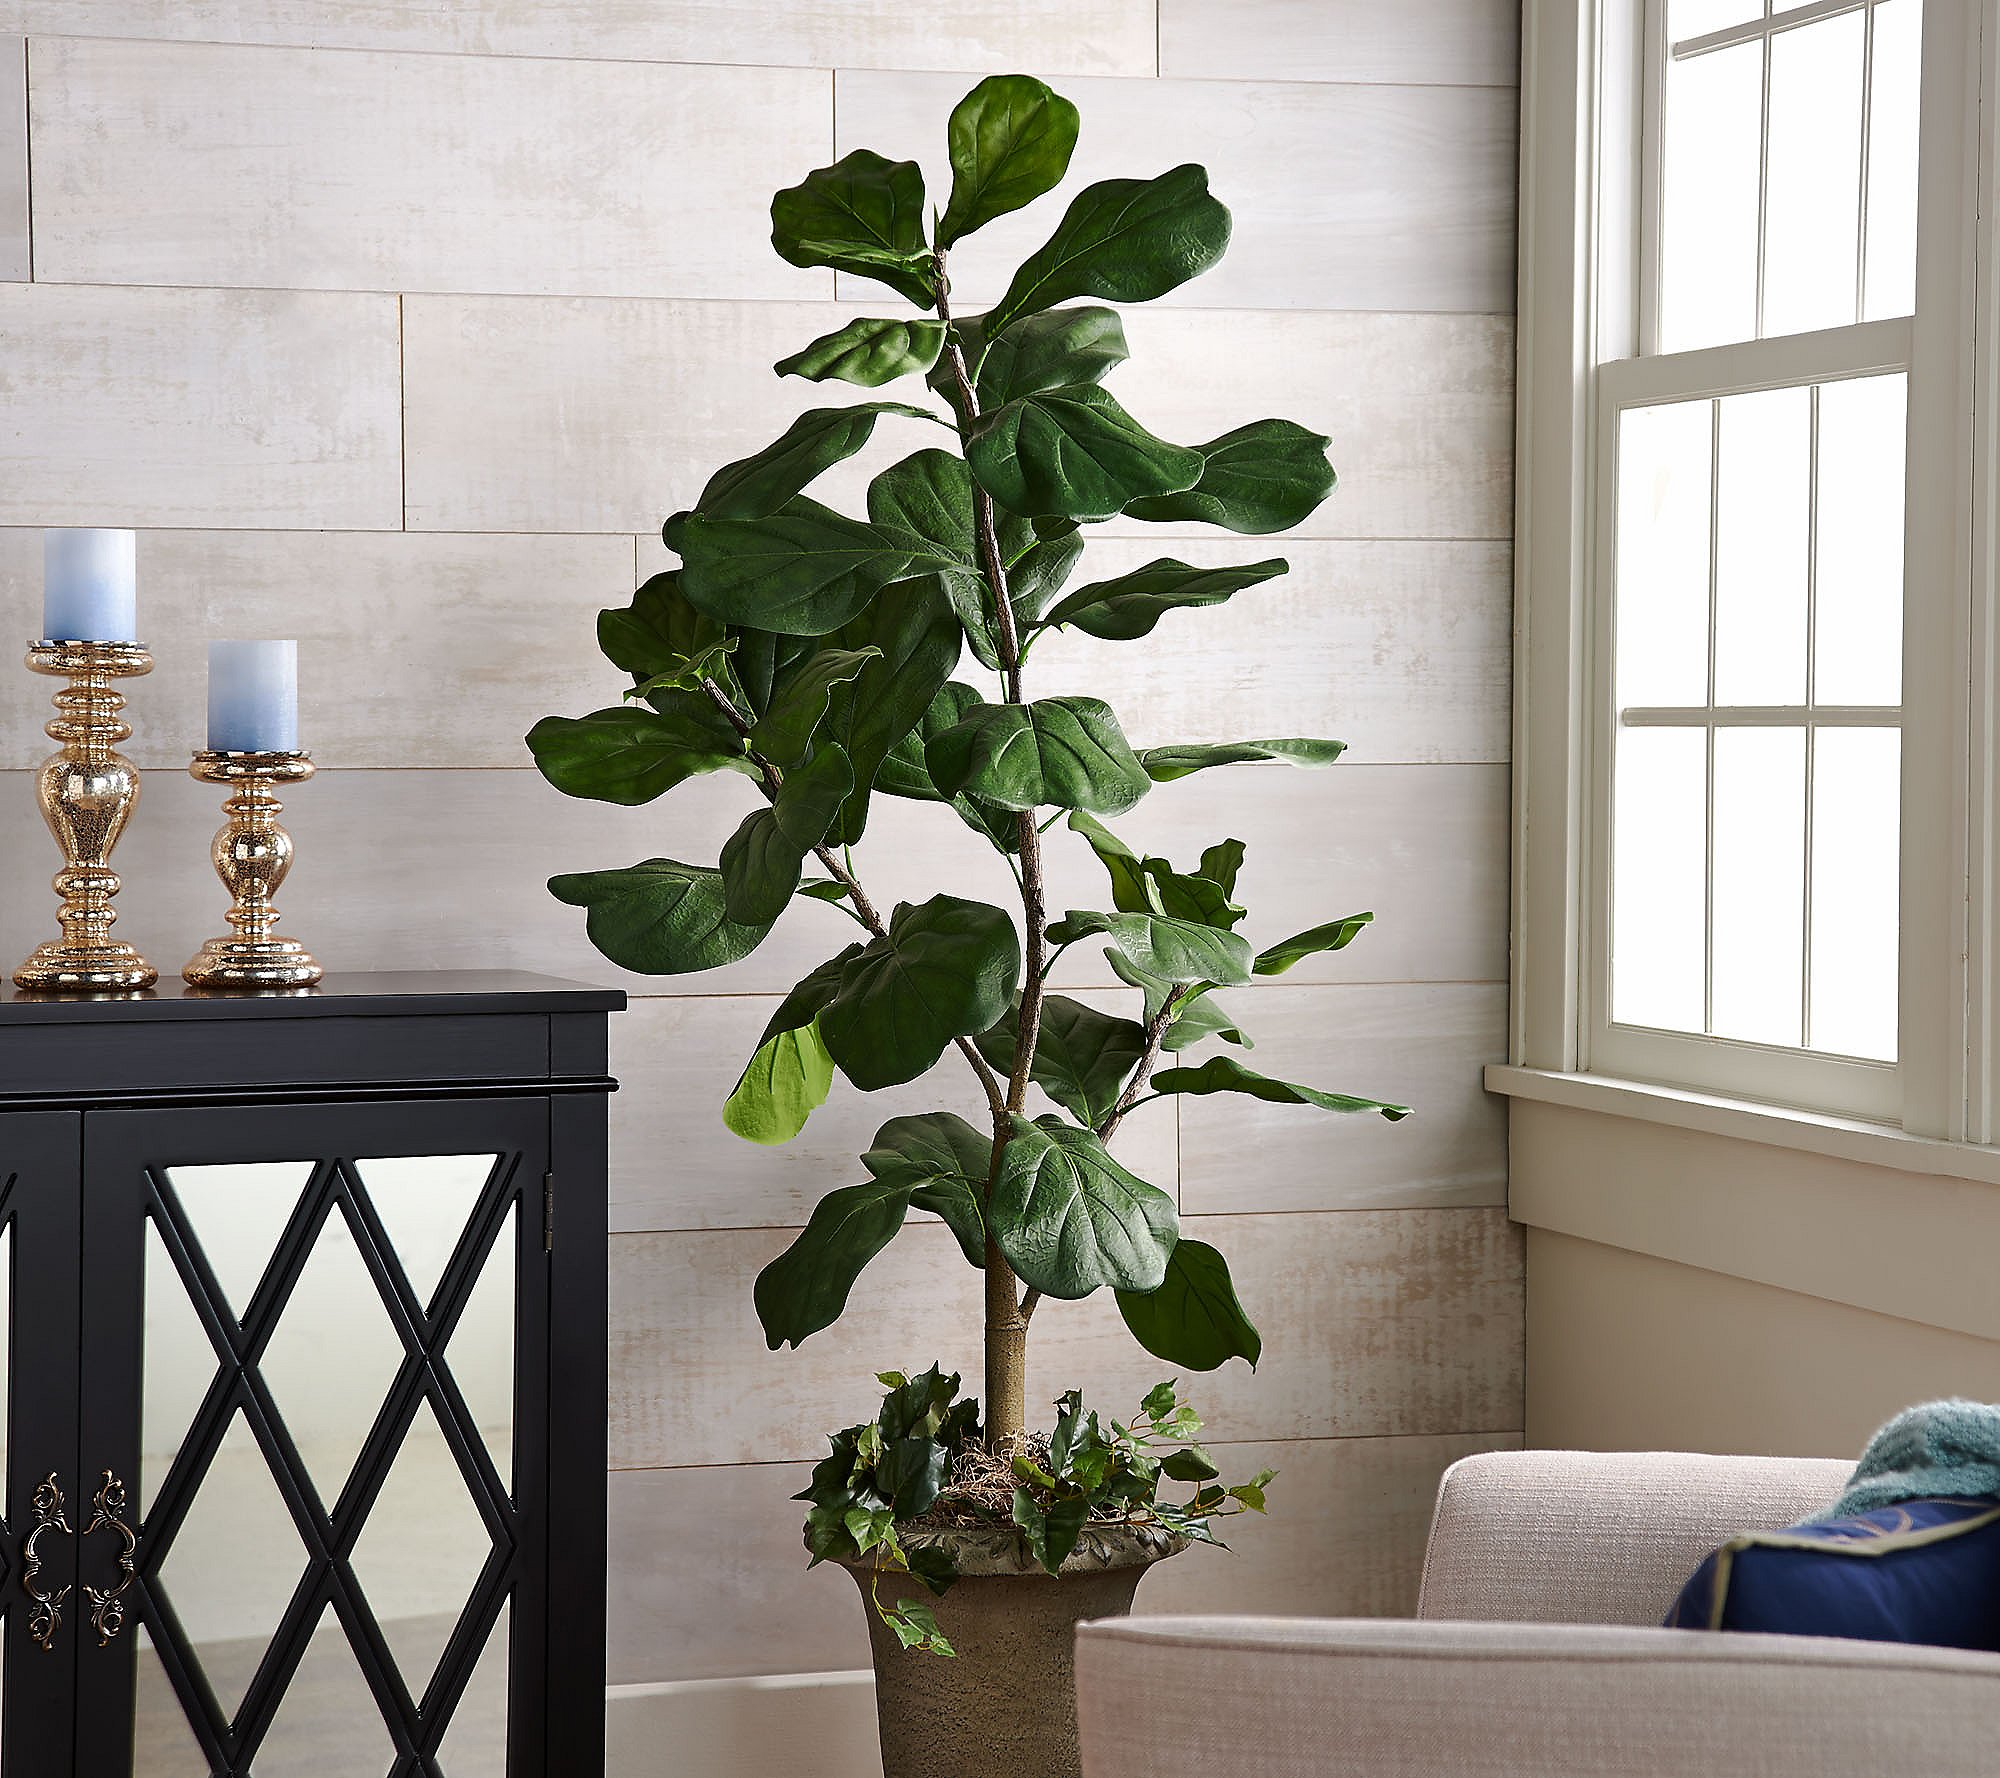 Shop 5' Faux Fiddle Leaf Tree in Starter Pot by Valerie from QVC on Openhaus